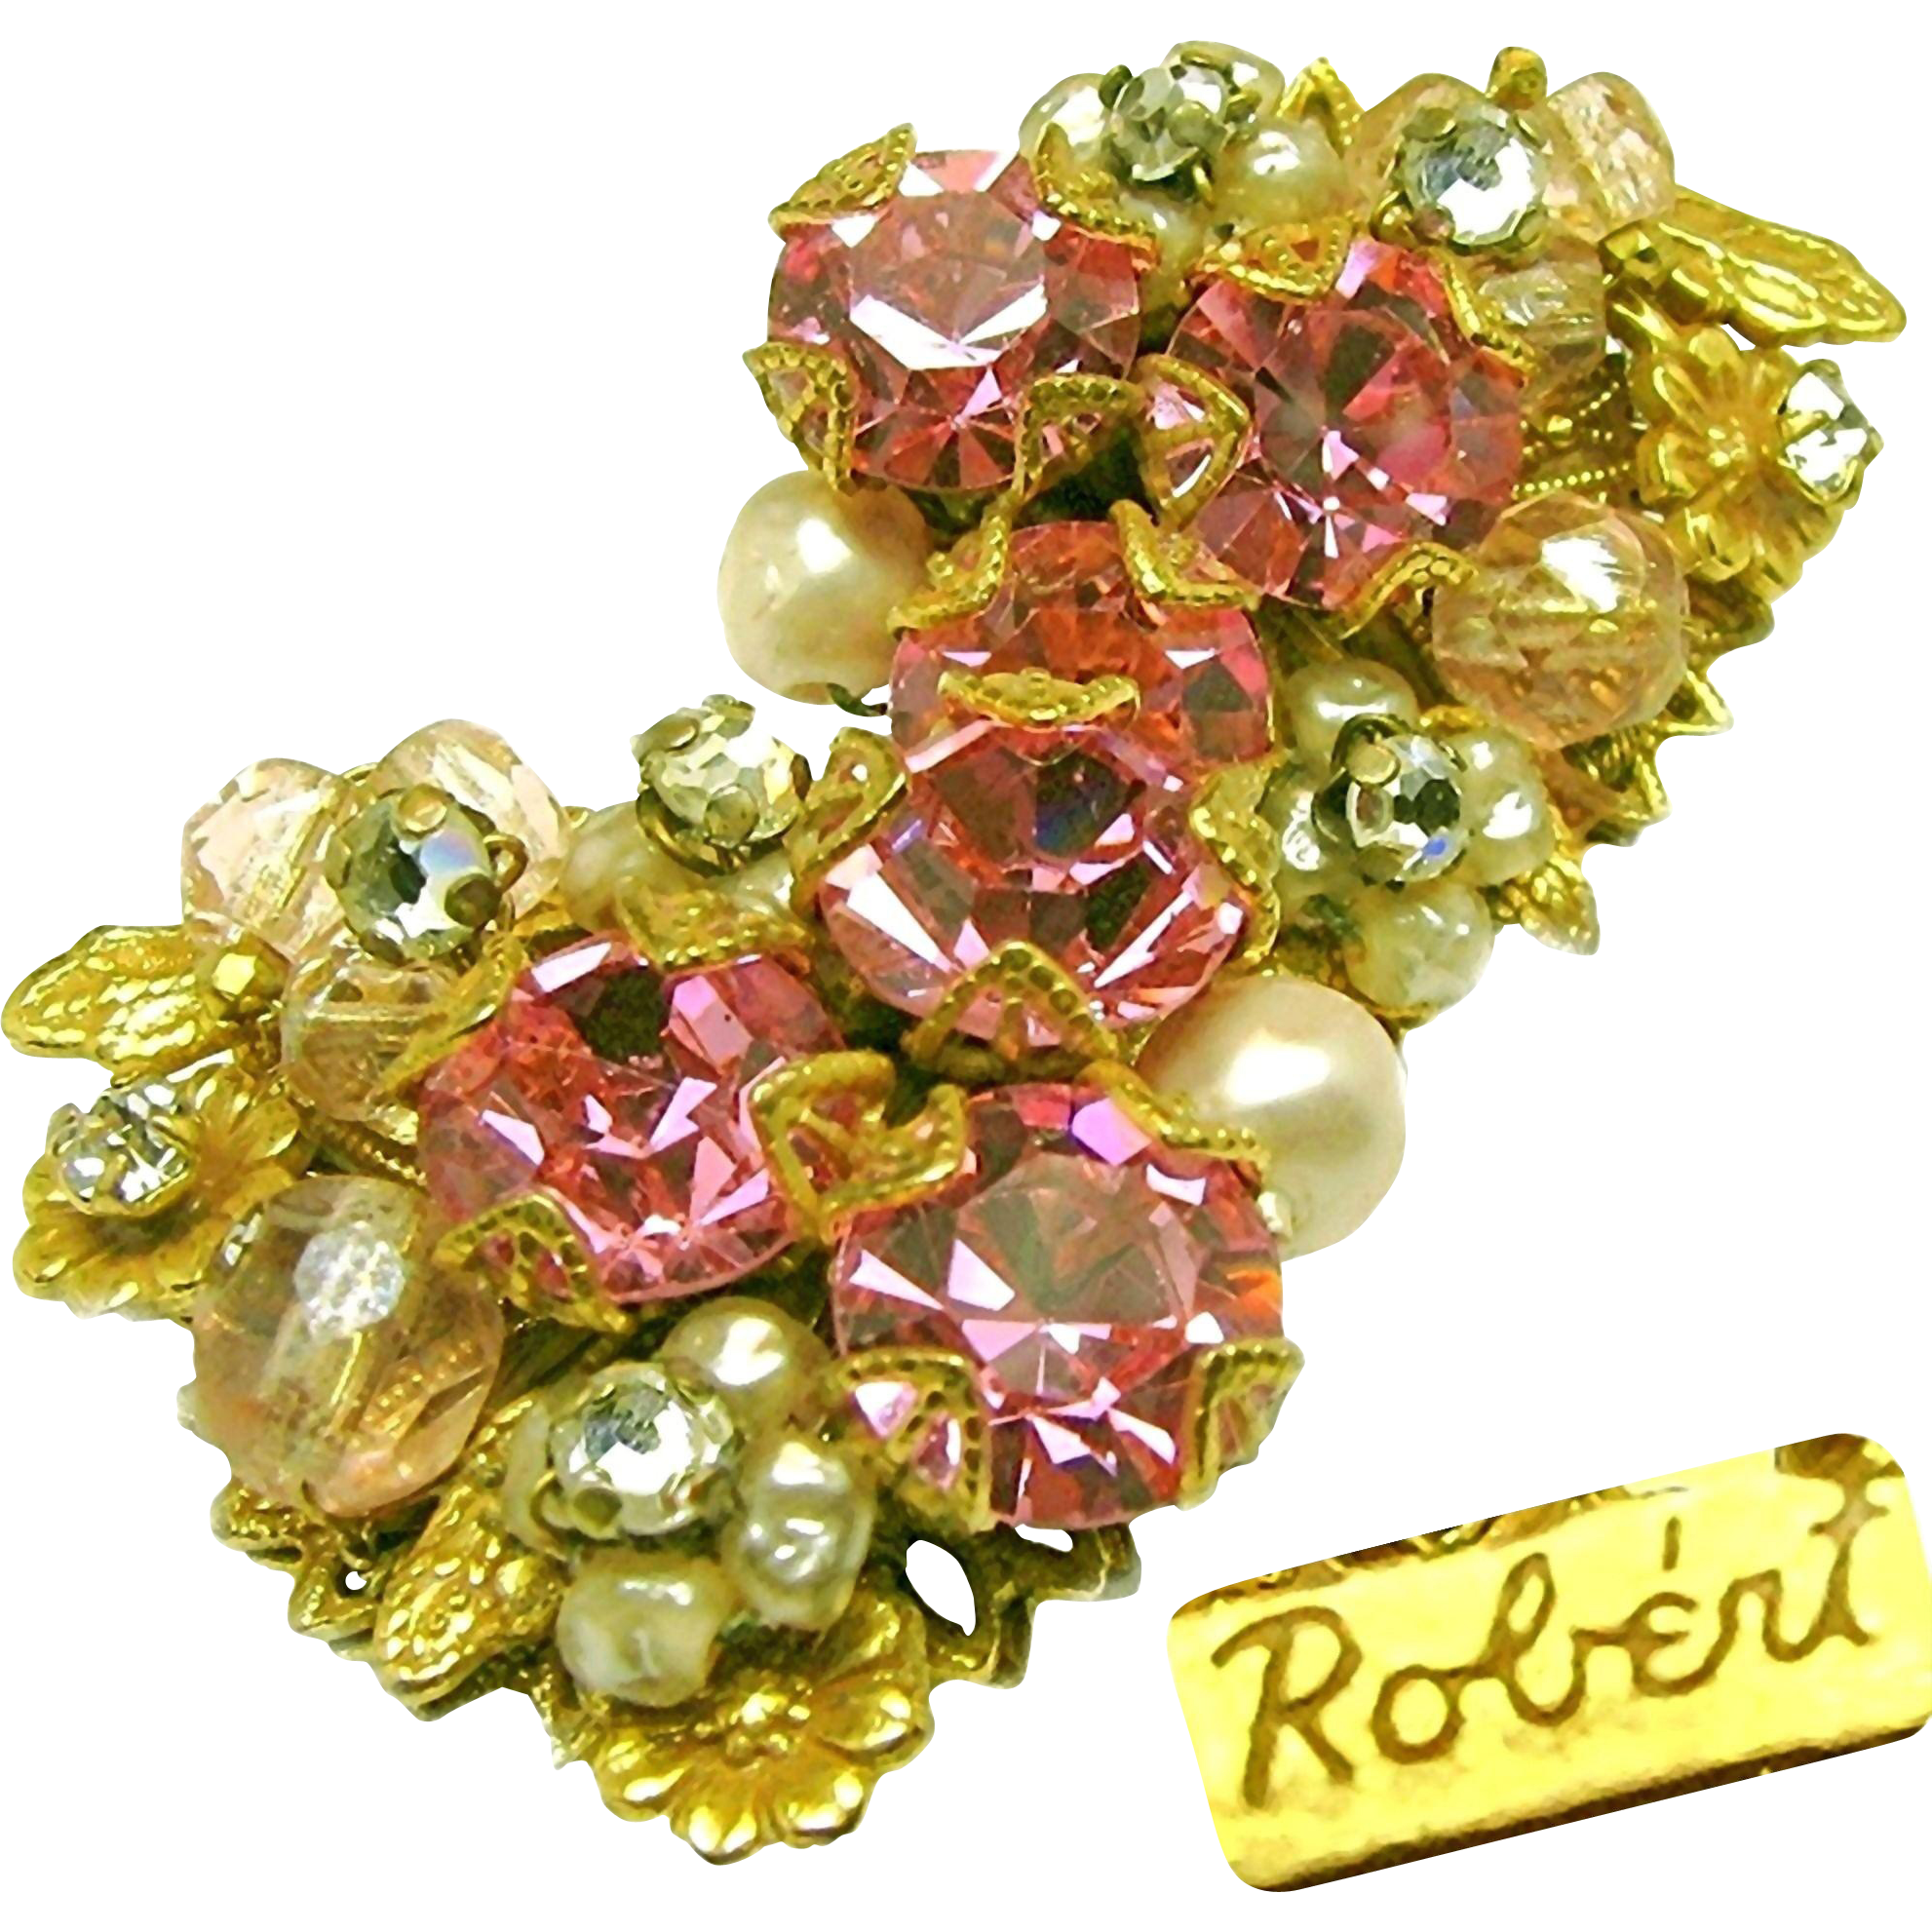 Vintage ROBERT Corsage Earrings w/ Rose Montee 'n Pink Rhinestones c.1950's